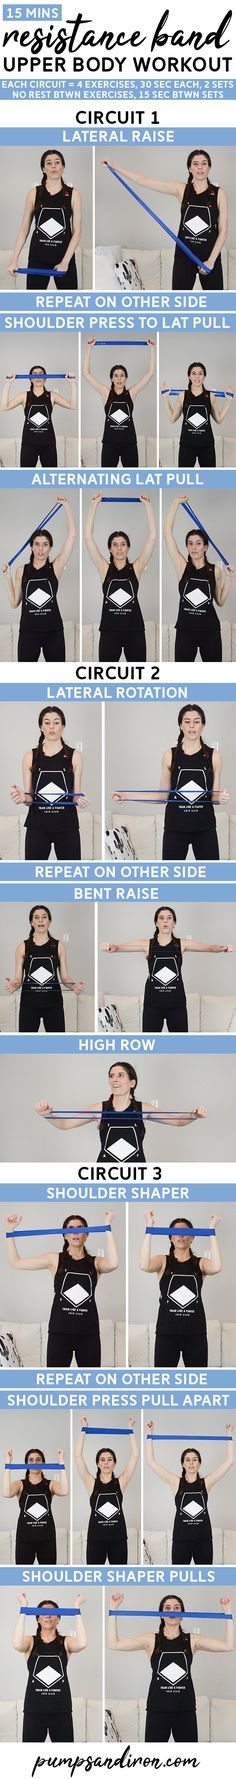 This upper body resistance band loop workout will take you 15 minutes. It's broken up into three mini circuits and packs a big burn! Follow along with the video at home.